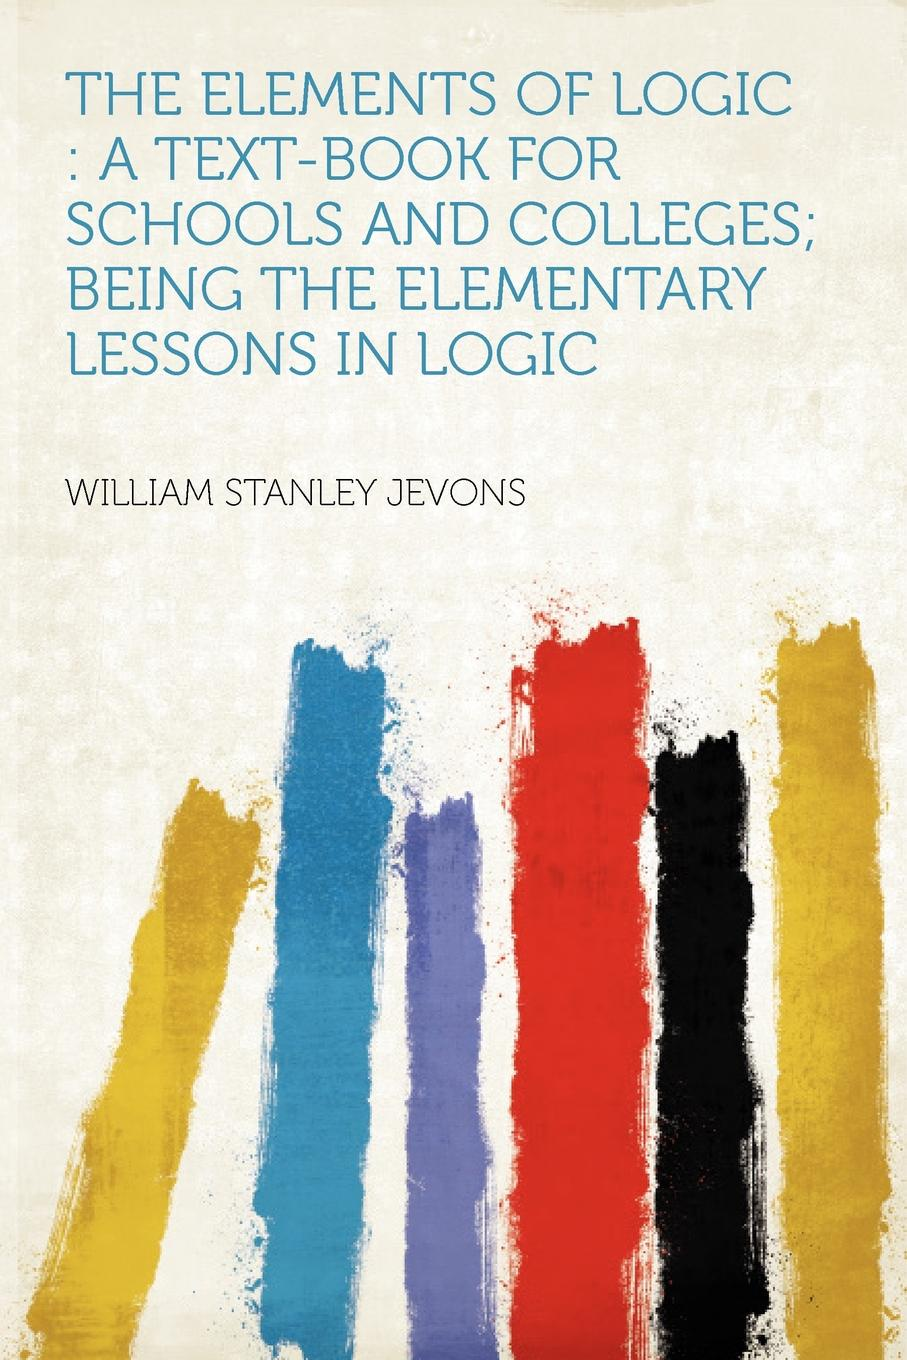 The Elements of Logic. a Text-book for Schools and Colleges; Being the Elementary Lessons in Logic. William Stanley Jevons